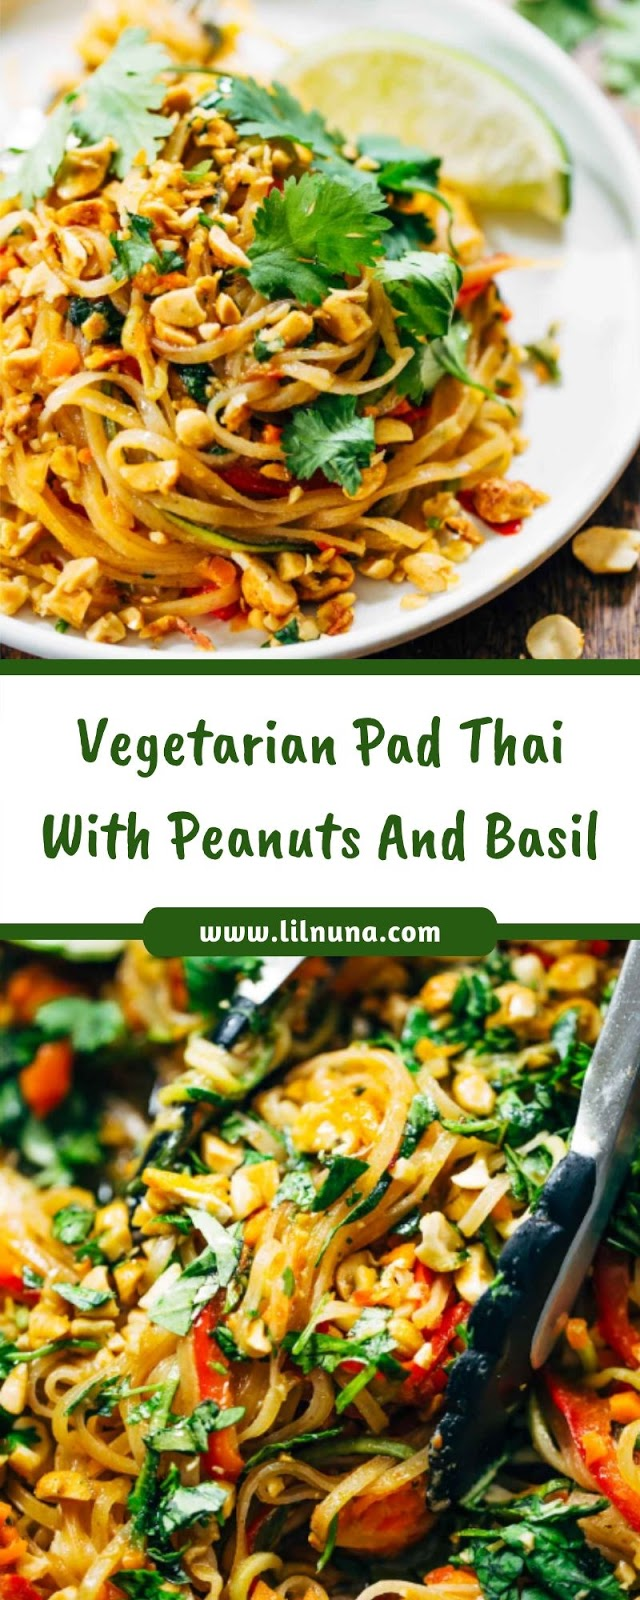 Vegetarian Pad Thai With Peanuts And Basil